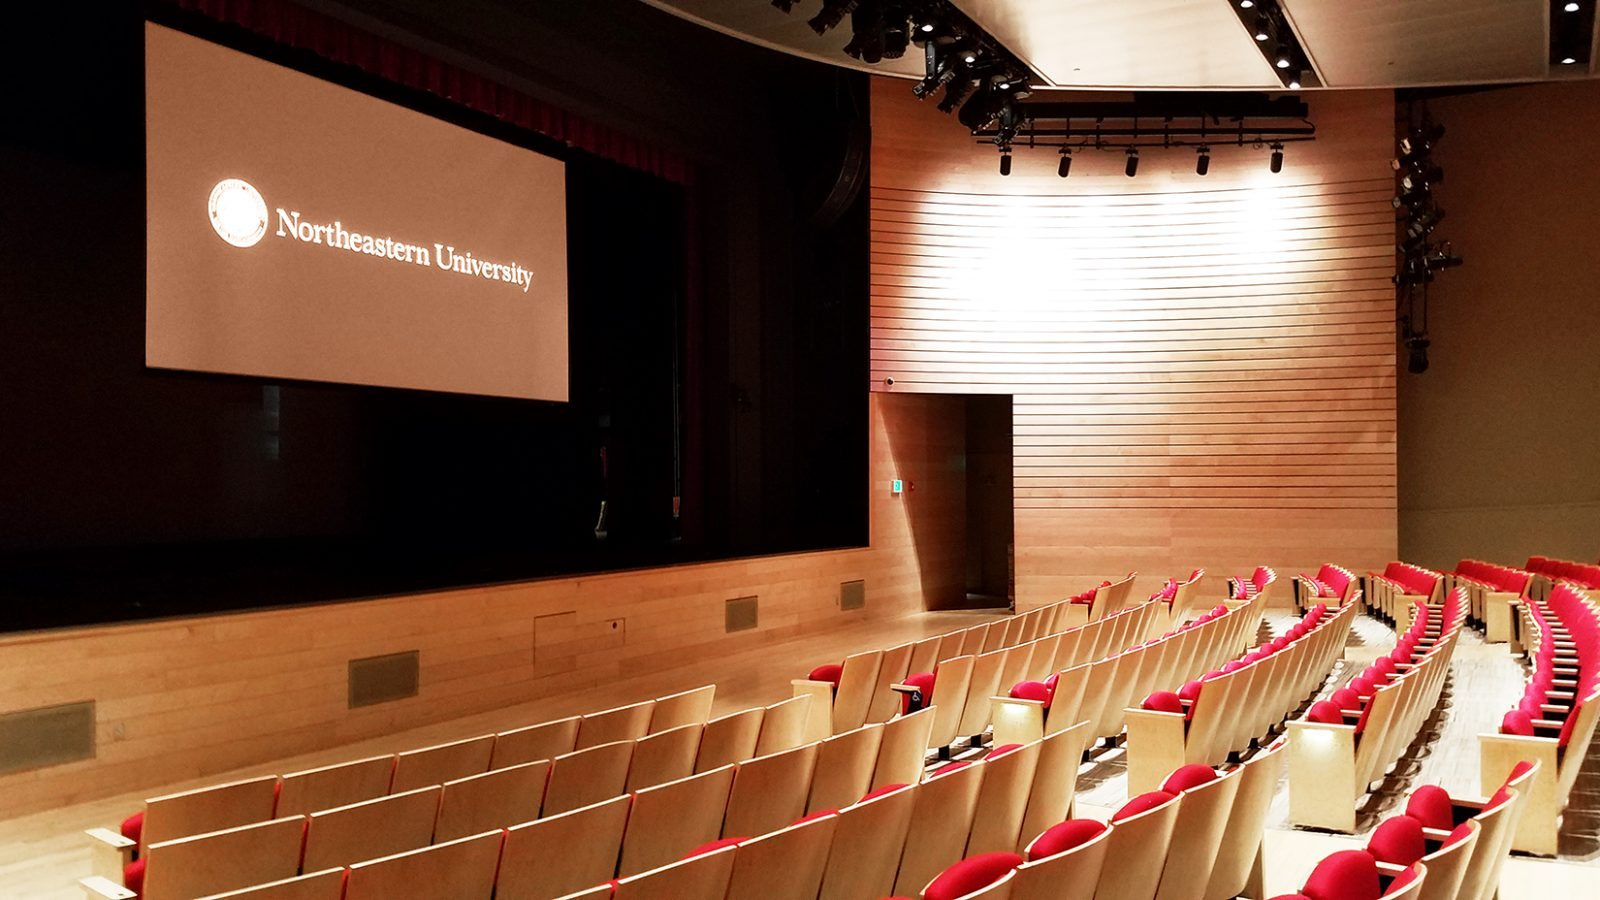 Northeastern University / Blackman Auditorium